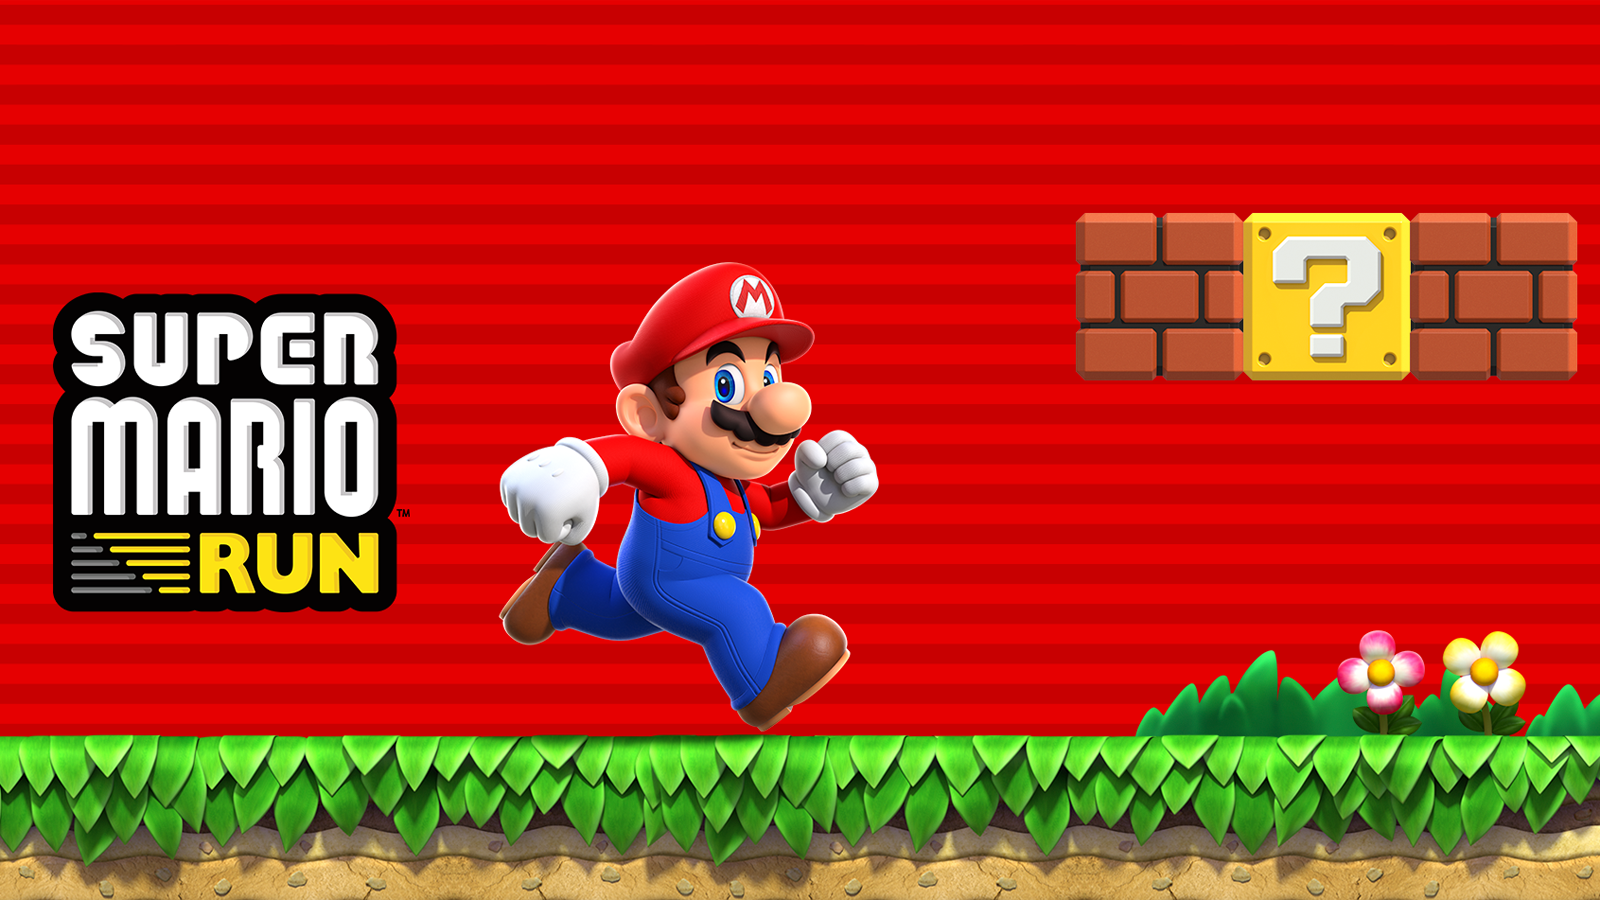 Drop what you're doing - 'Super Mario Run' is now available on iOS